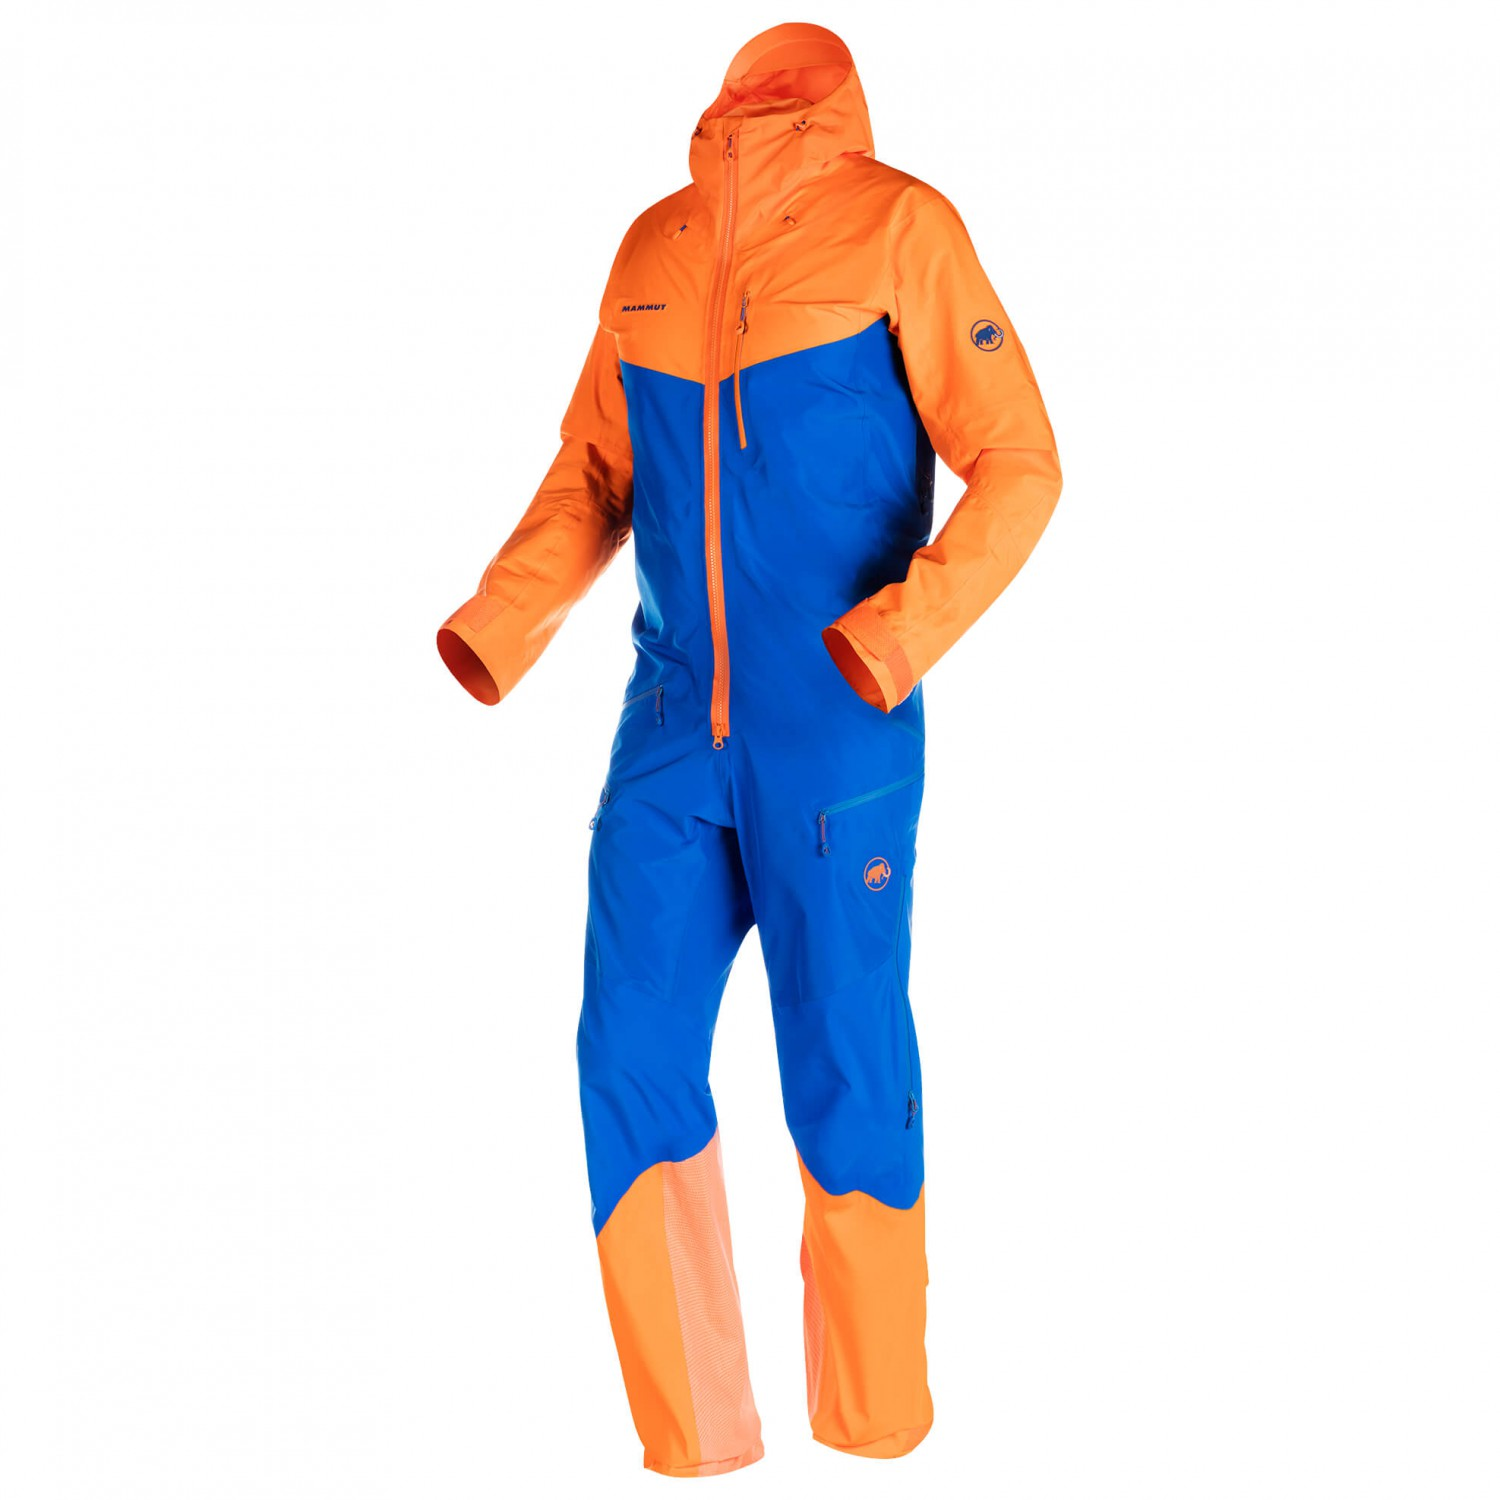 top quality lower price with outlet store Mammut Nordwand Pro Hardshell Suit - Overall Men's | Buy ...